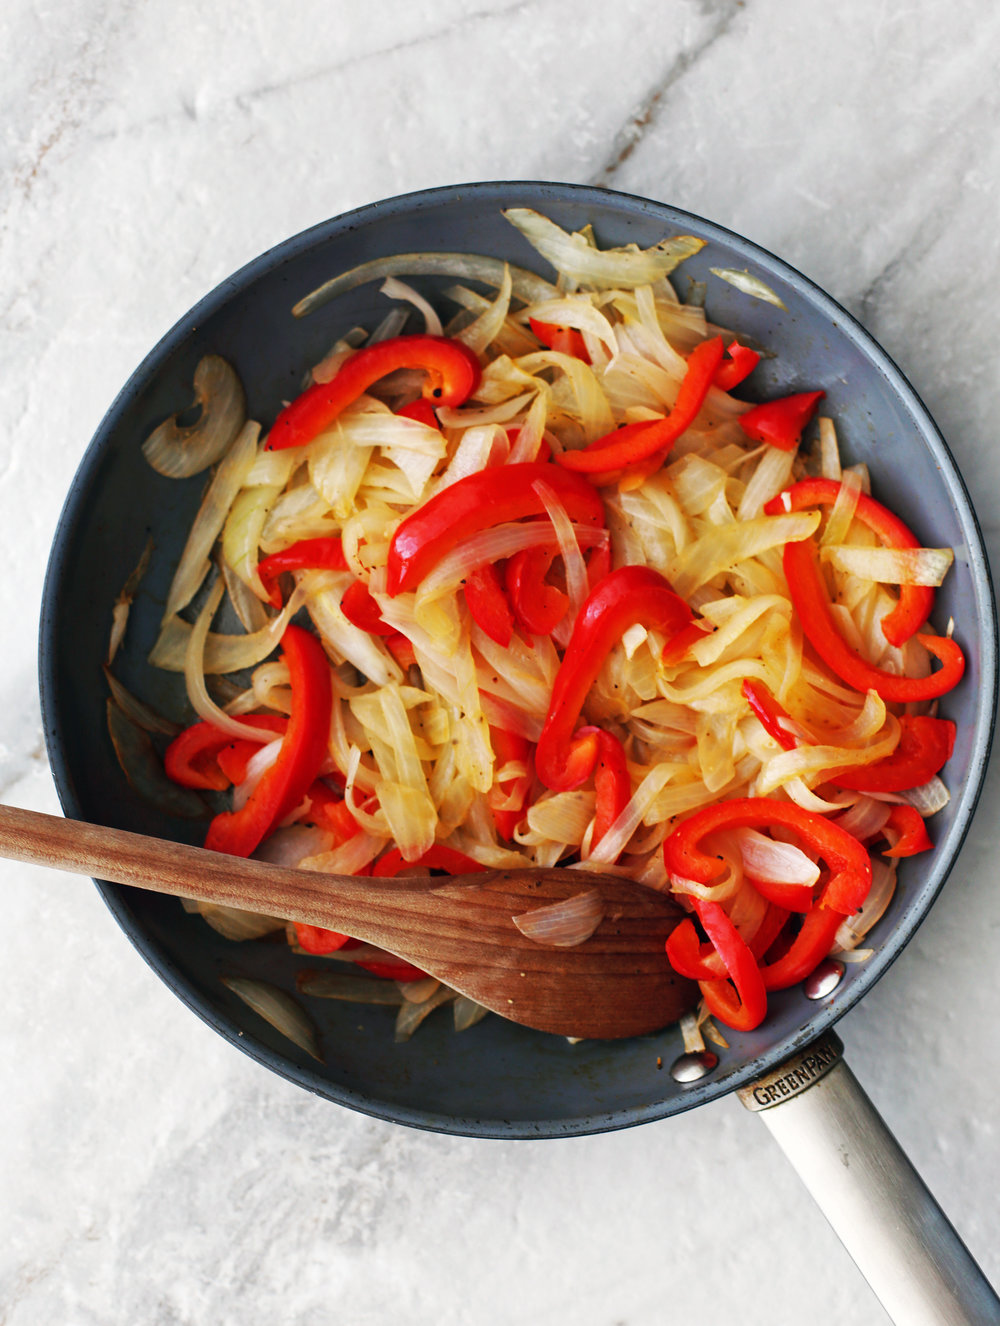 Sauteed sliced onions and peppers in a skillet with a wooden spoon.